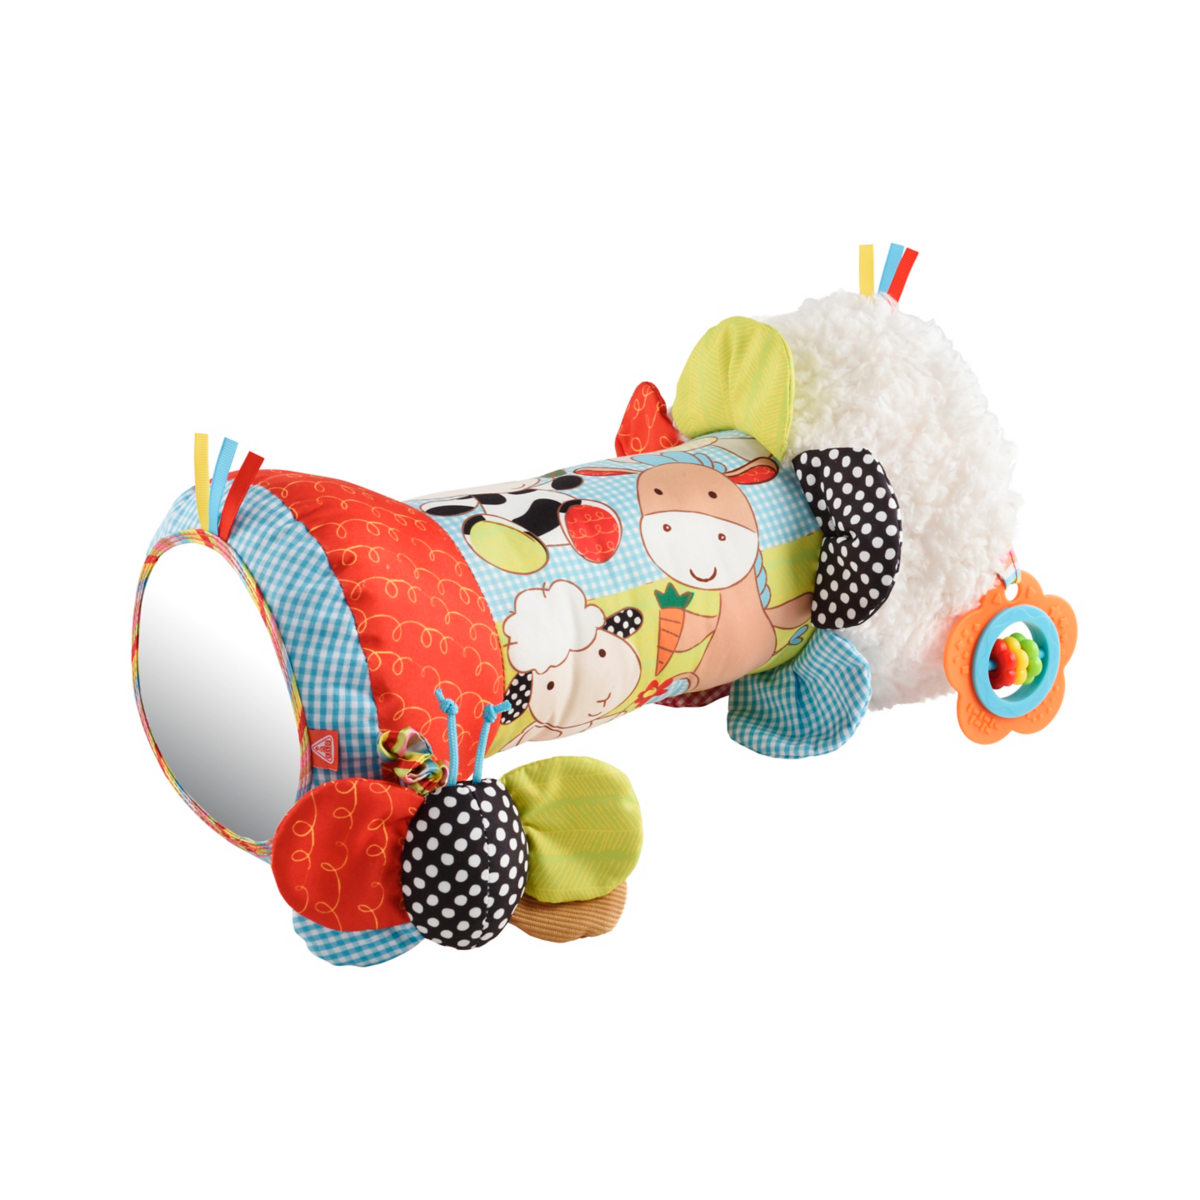 Blossom Farm Tummy Time Activity Toy from Early Learning Center